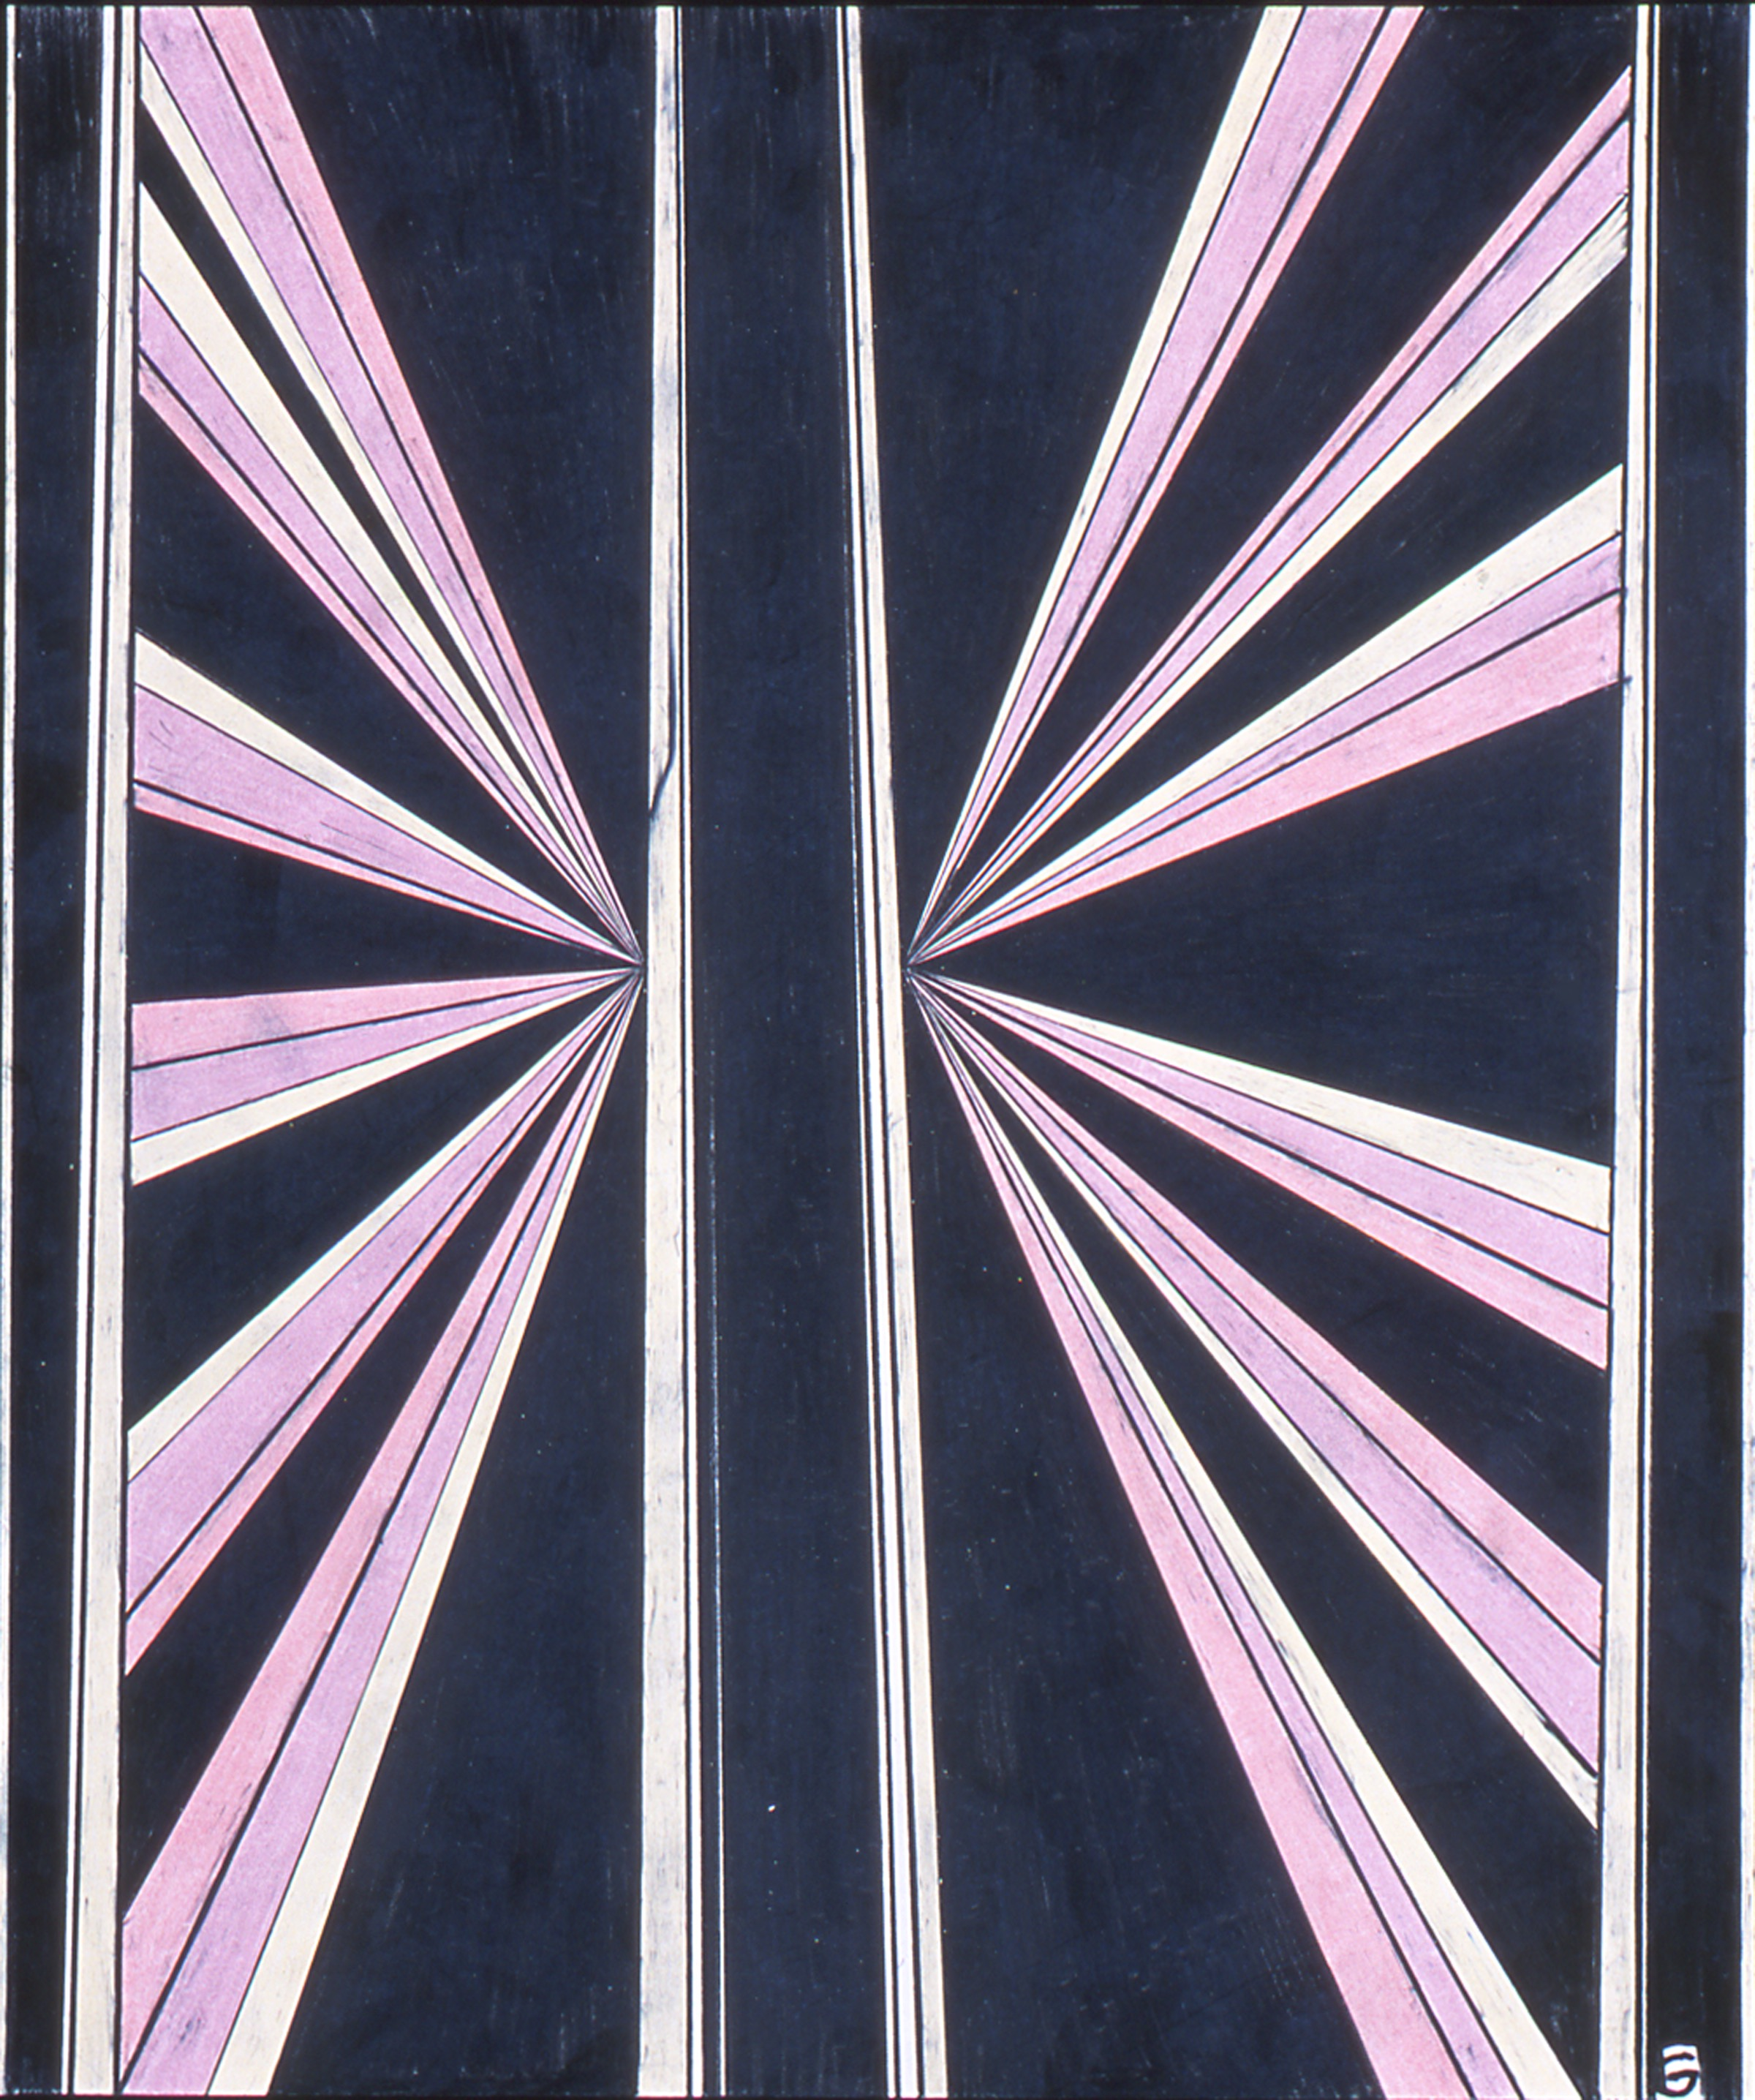 """Mark Grotjahn Untitled 2002 Colored pencil on paper 17"""" x 14"""""""